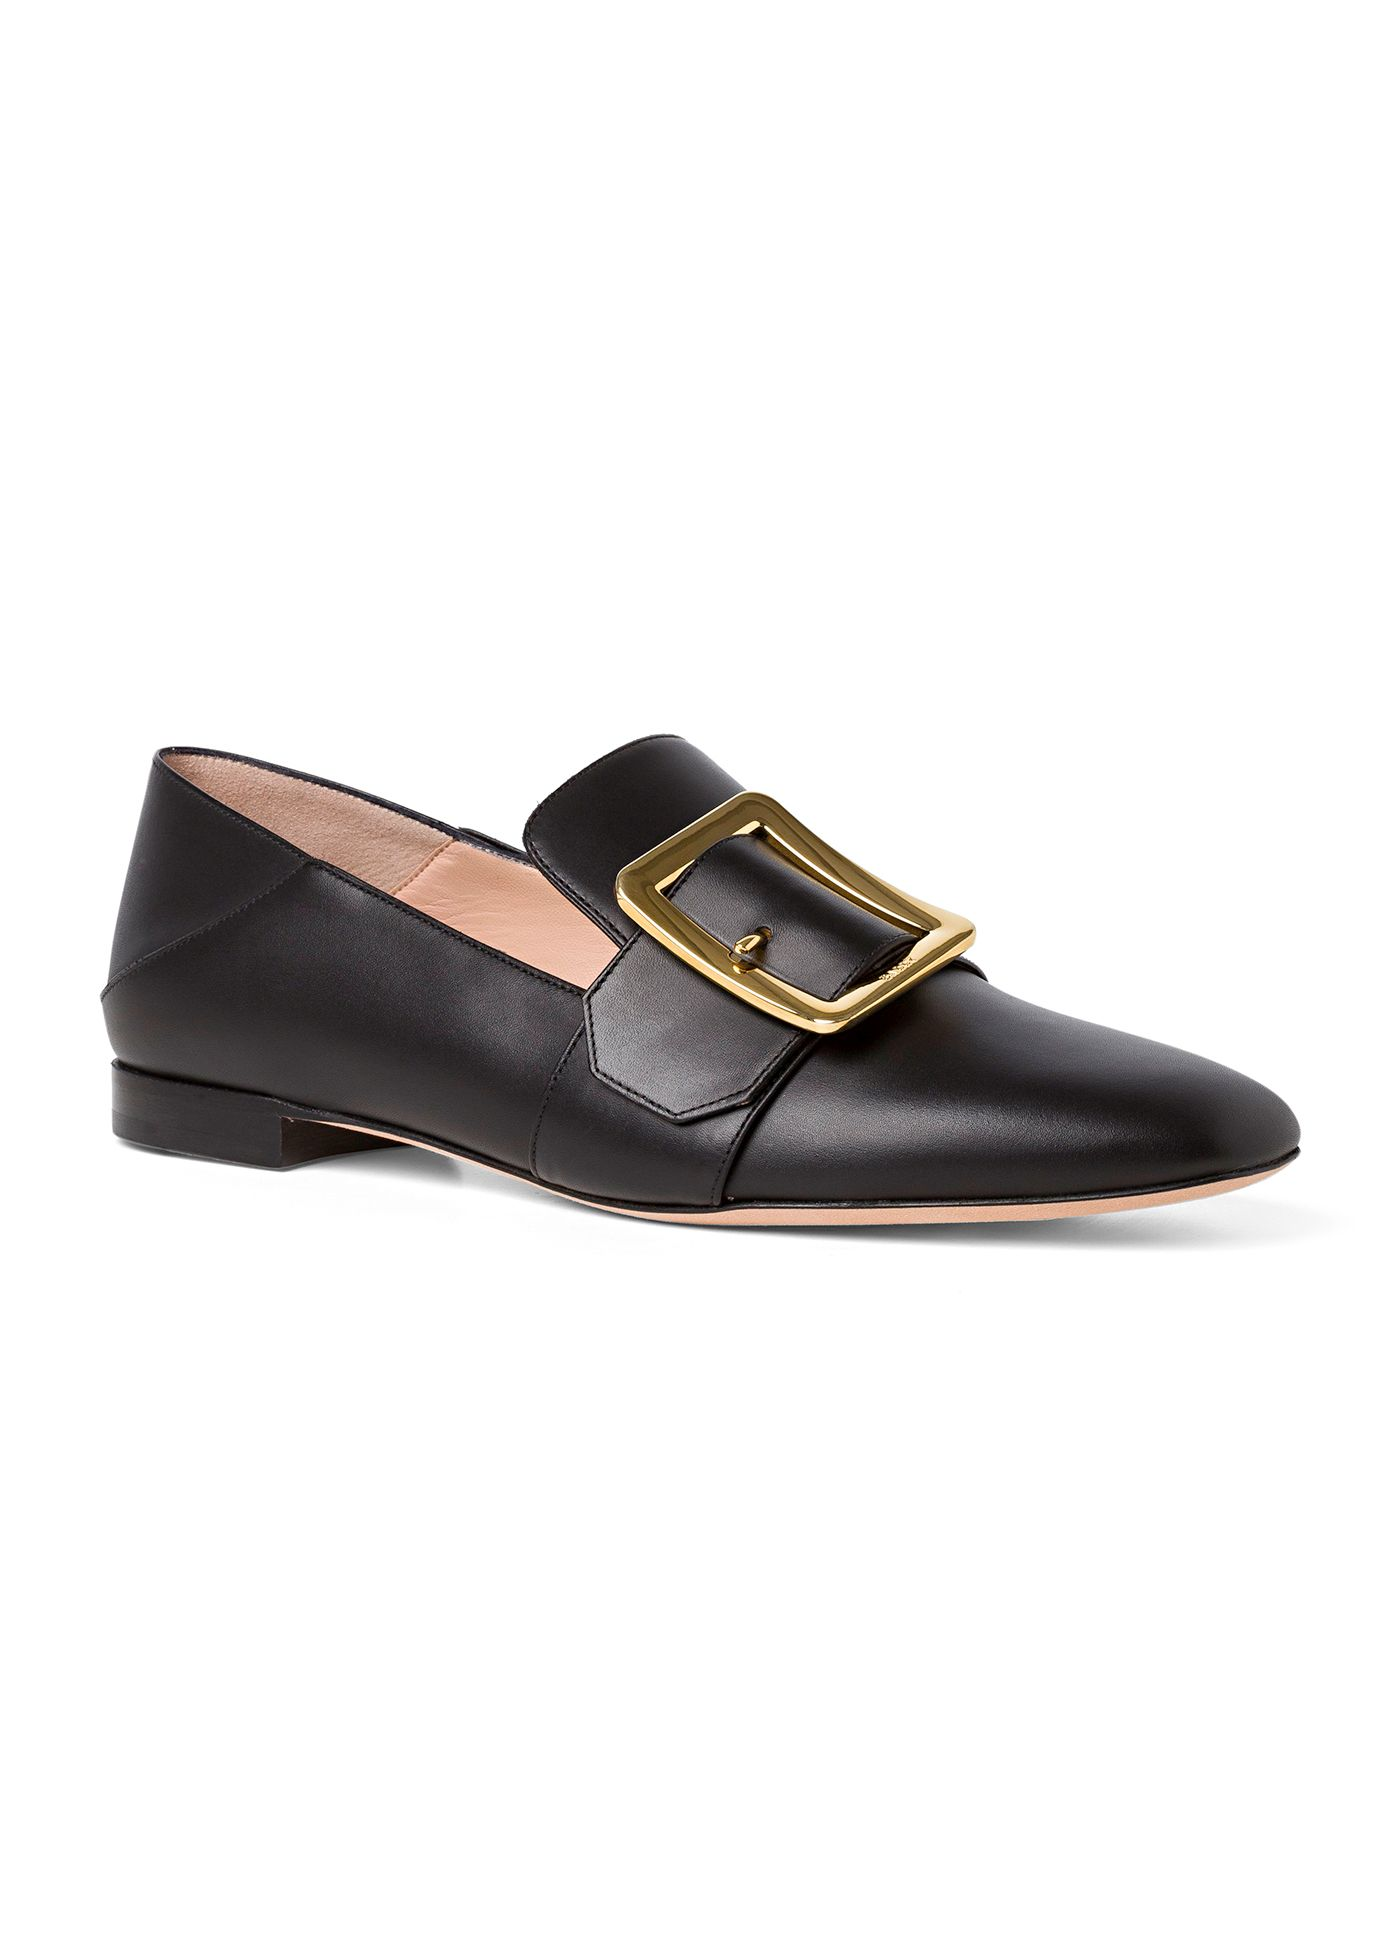 Janelle Loafer Classic image number 1